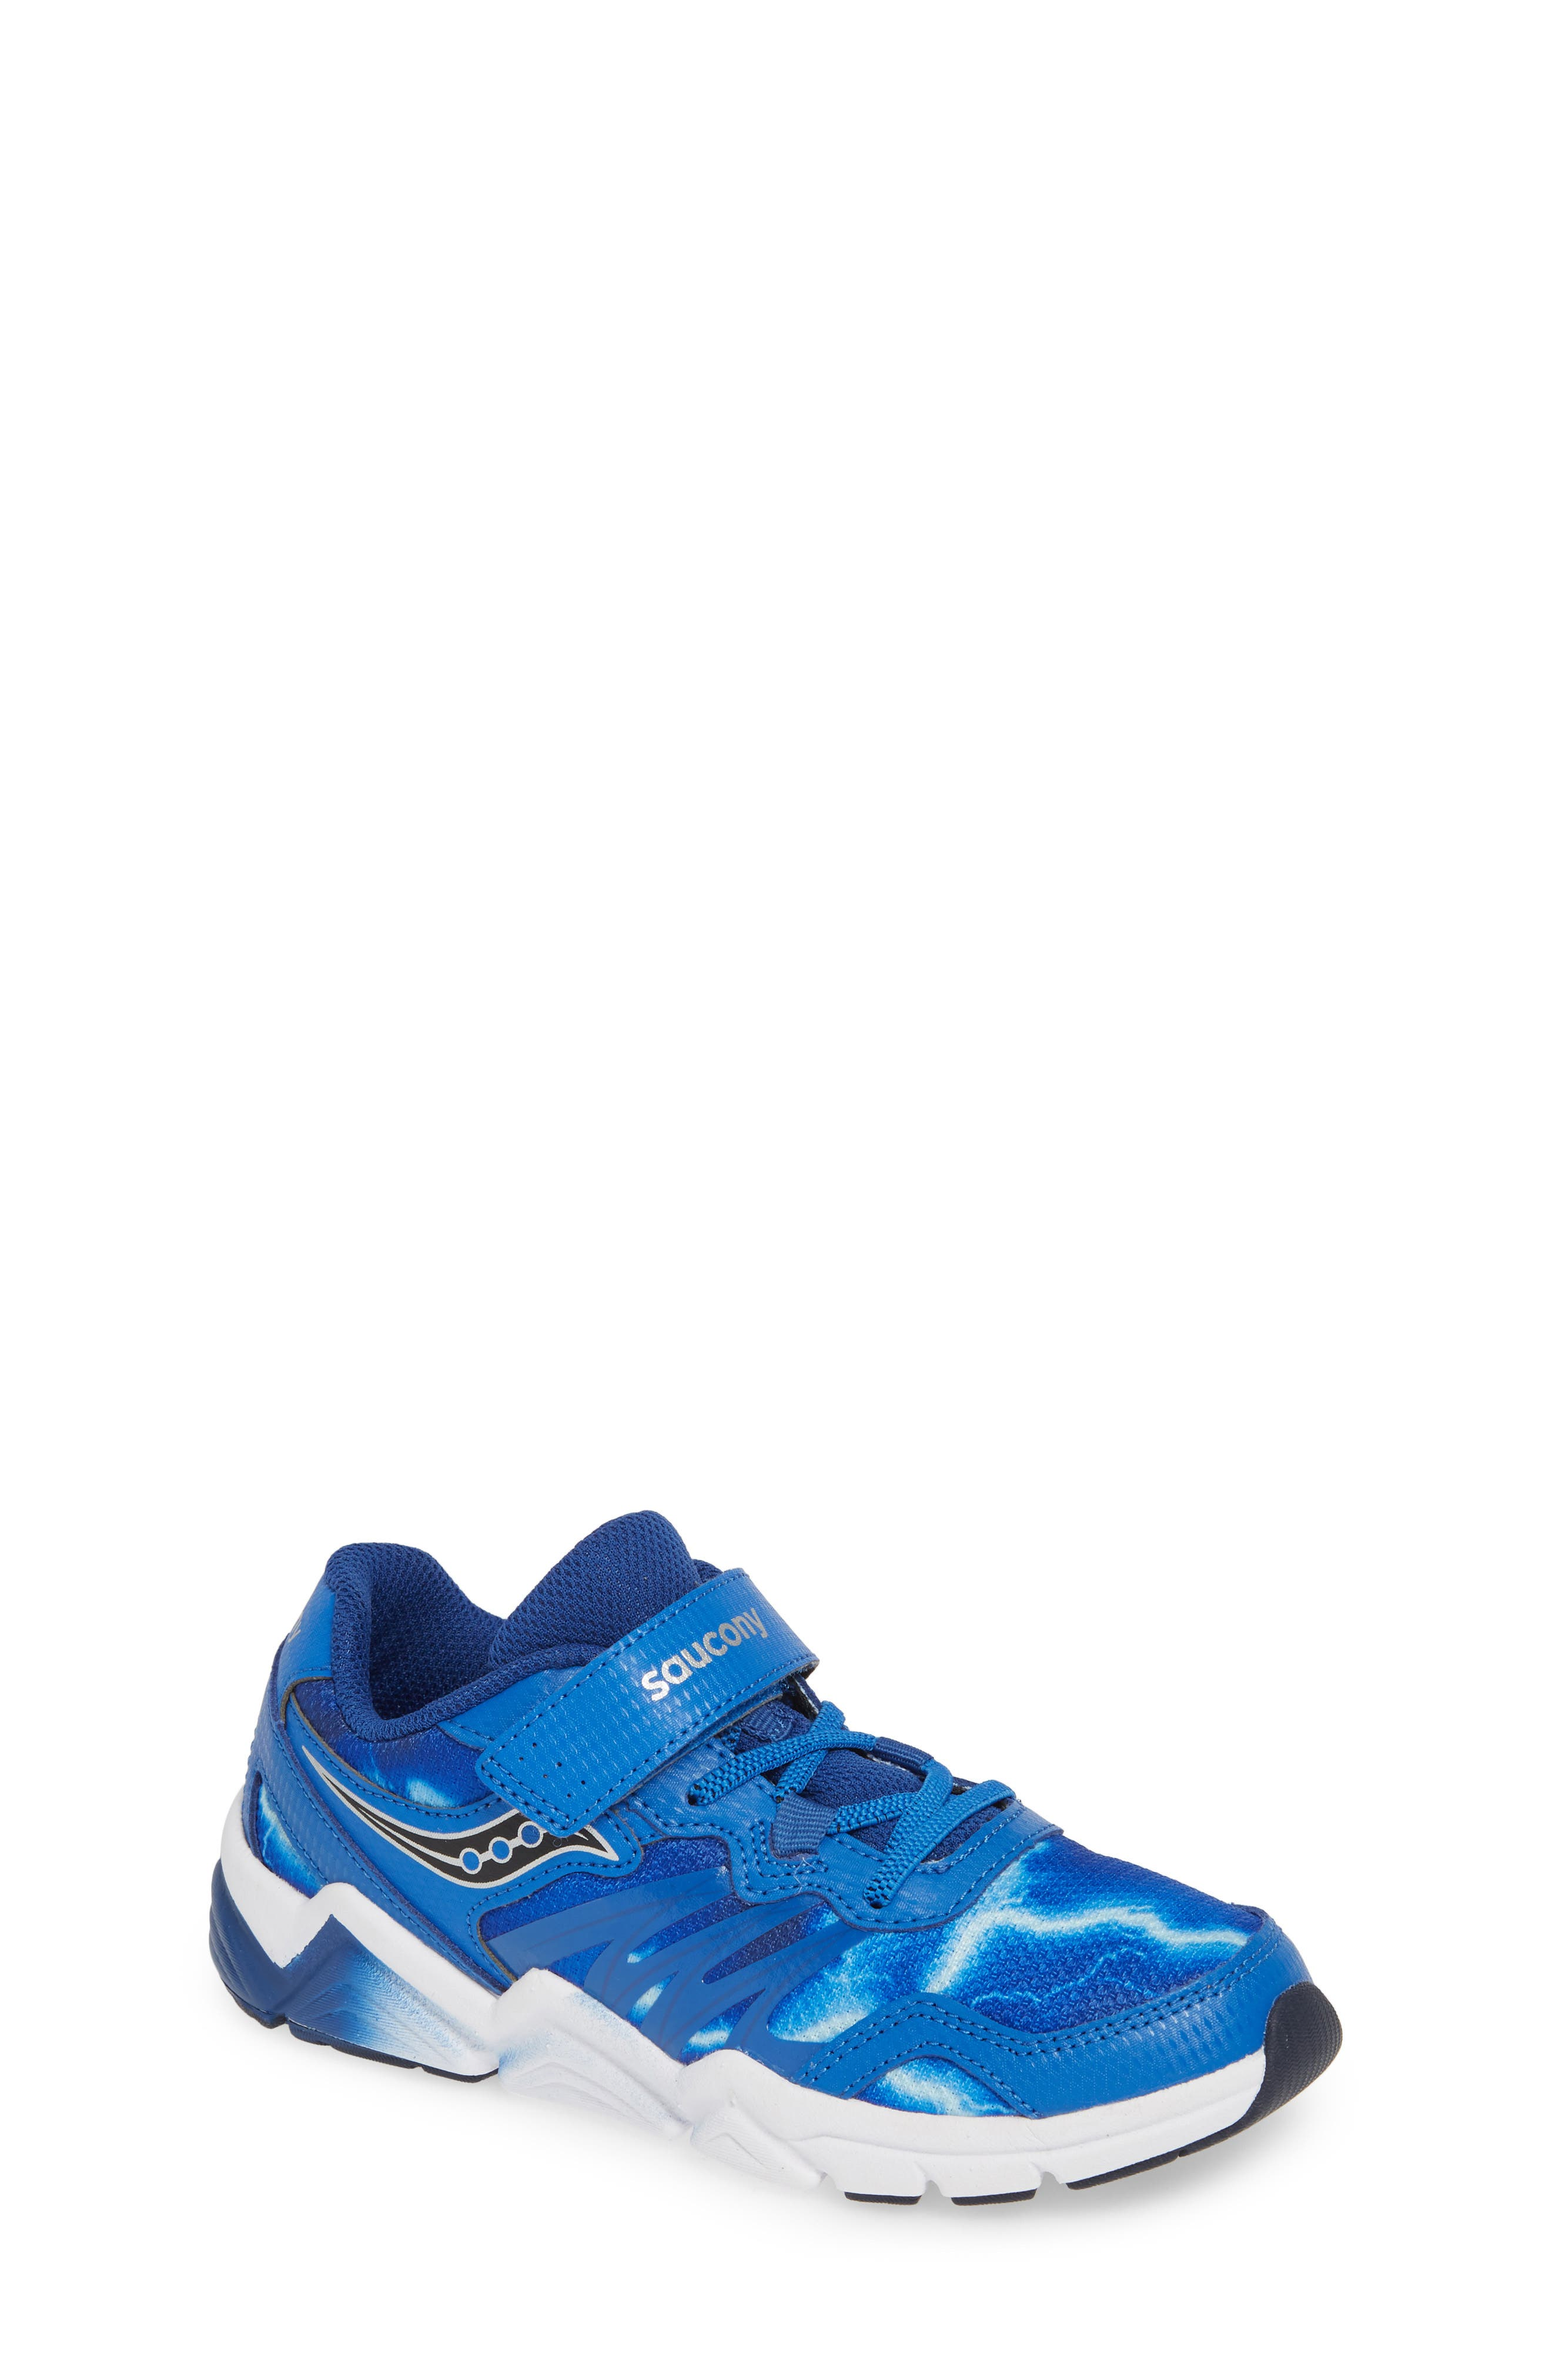 701f922380f9 Girls  Saucony Shoes